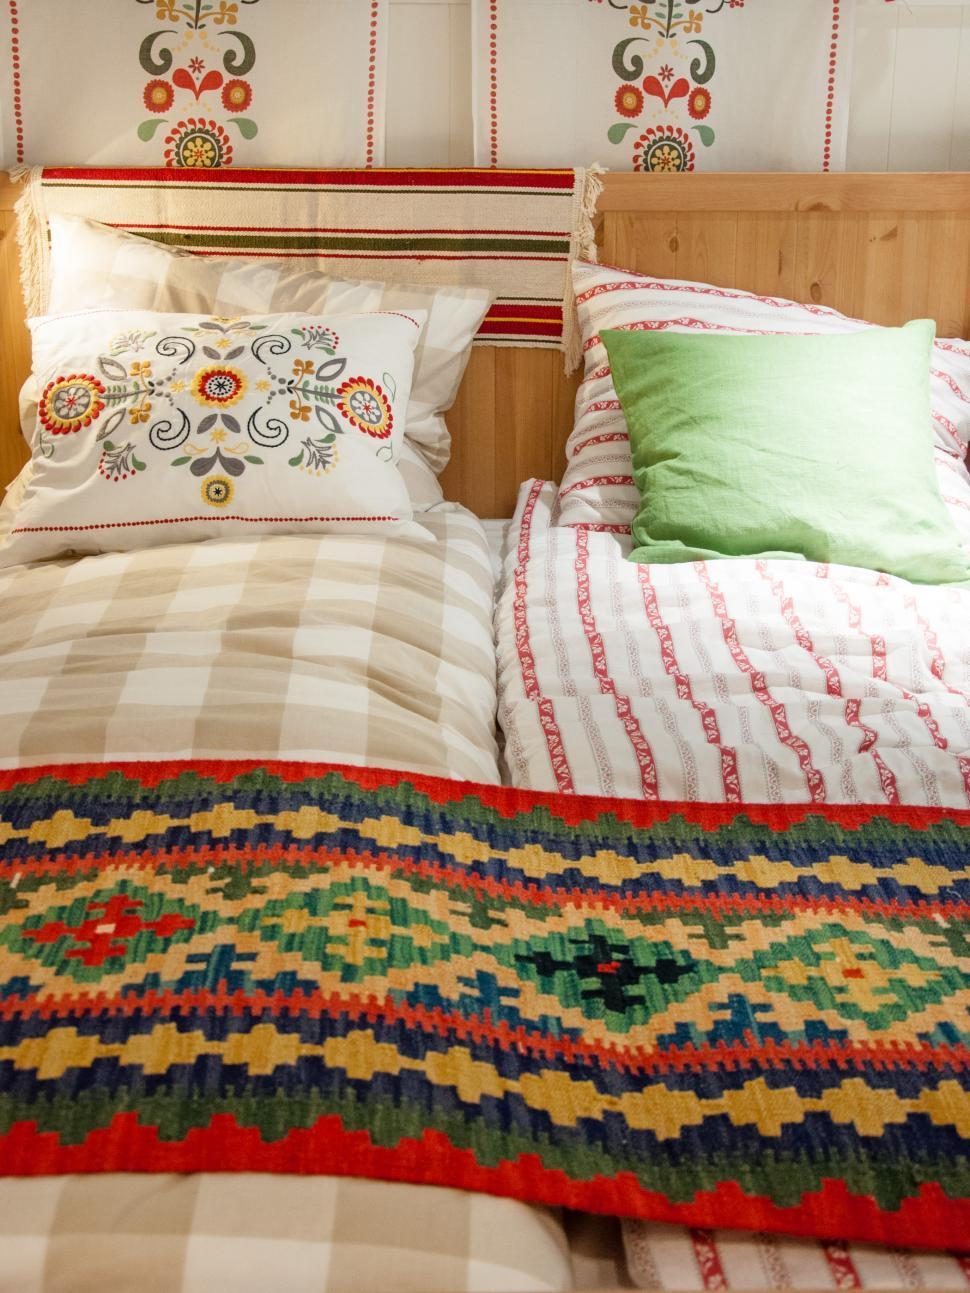 Download Free Stock HD Photo of country style bedroom bed Online